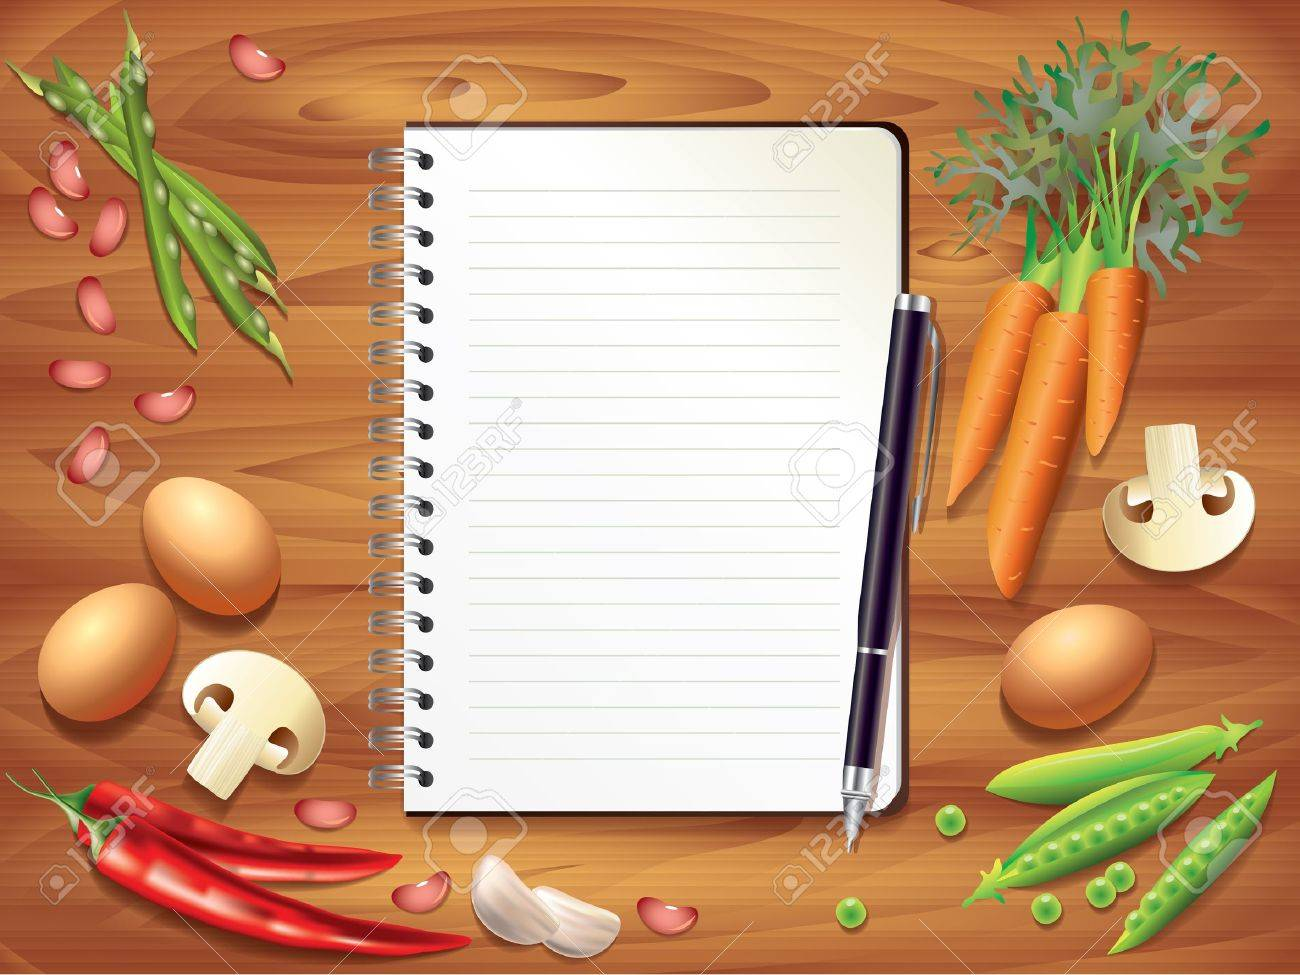 Top view recipe book on wooden kitchen table food ingredients top view recipe book on wooden kitchen table food ingredients photo realistic stock vector workwithnaturefo